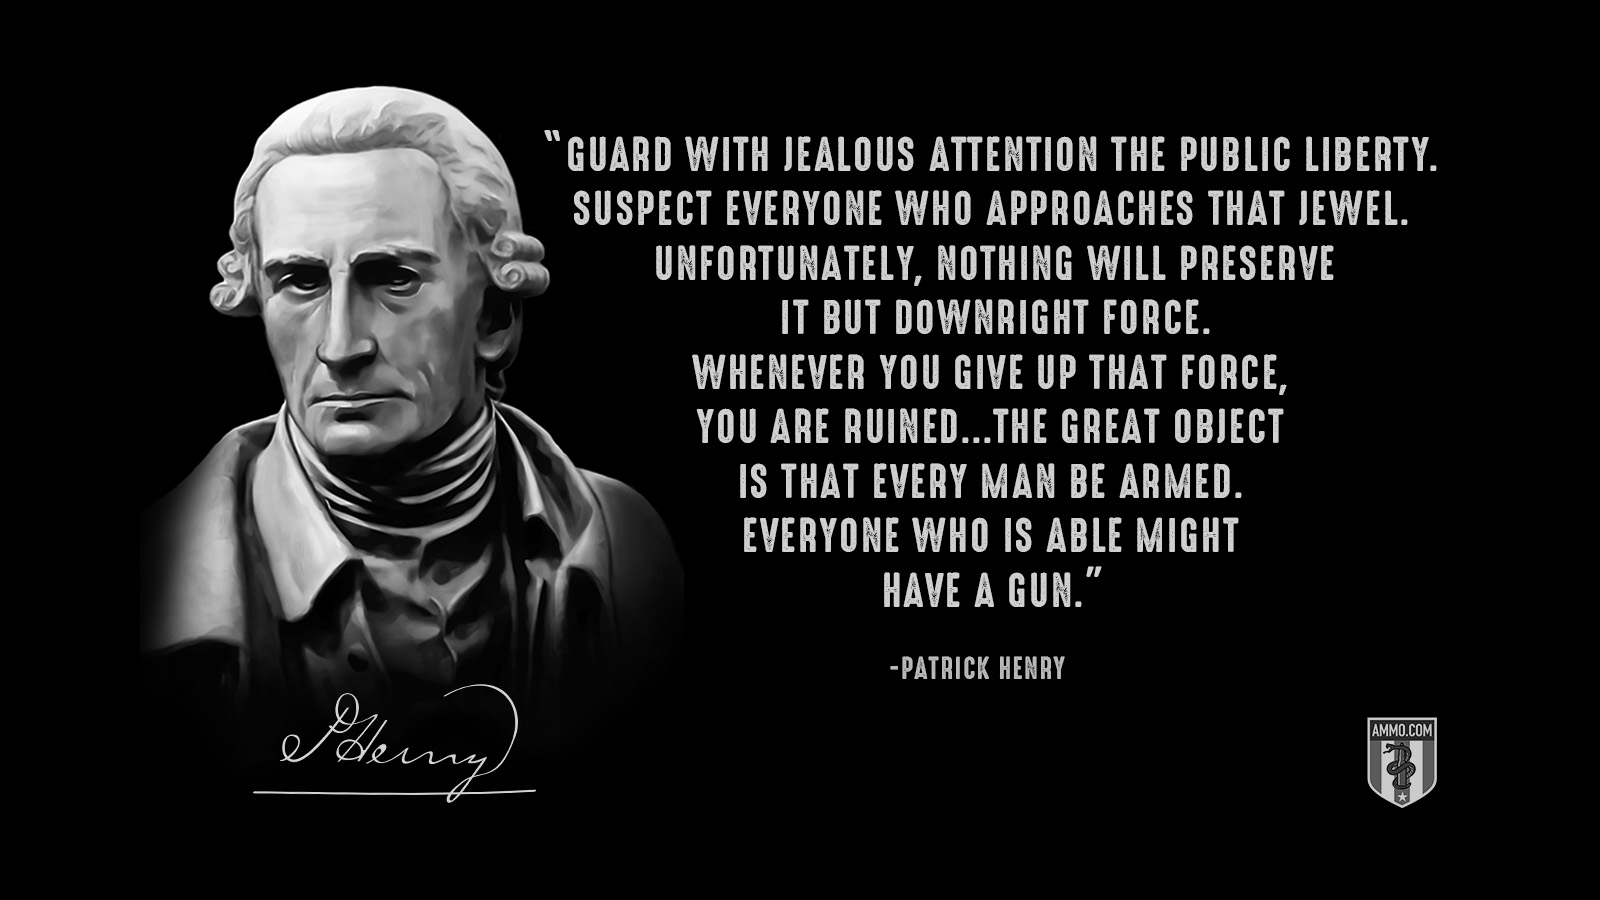 """Guard with jealous attention the public liberty. Suspect everyone who approaches that jewel. Unfortunately, nothing will preserve it but downright force. Whenever you give up that force, you are ruined...The great object is that every man be armed. Everyone who is able might have a gun."" - Patrick Henry"